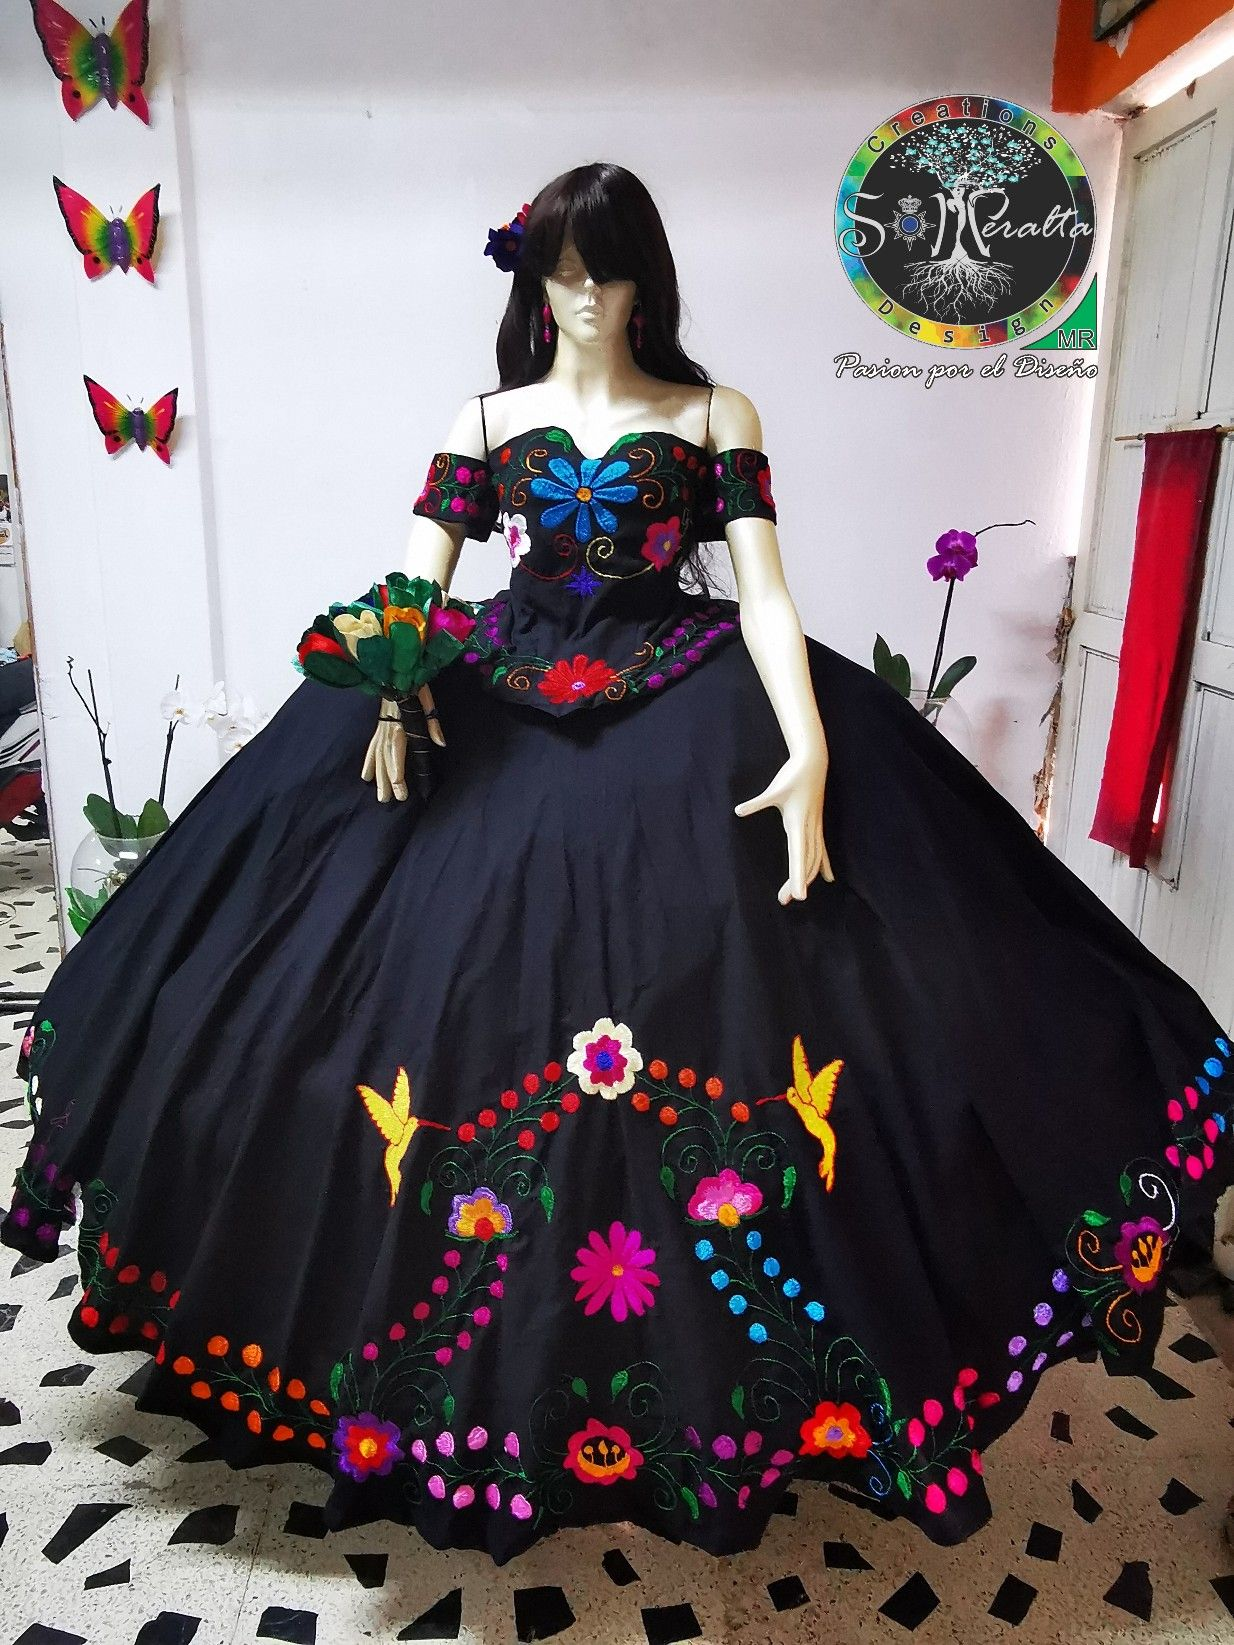 black charro quinceanera dress,one of a kind quinceanera dress,charro y china poblana quinceanera dress,floral embroidery quinceanera dress,the most expensive quinceanera dress,xv quinceanera dress,short sleeves quinceanera dress,quinceanera dress charro style,otomi quinceanera dress,